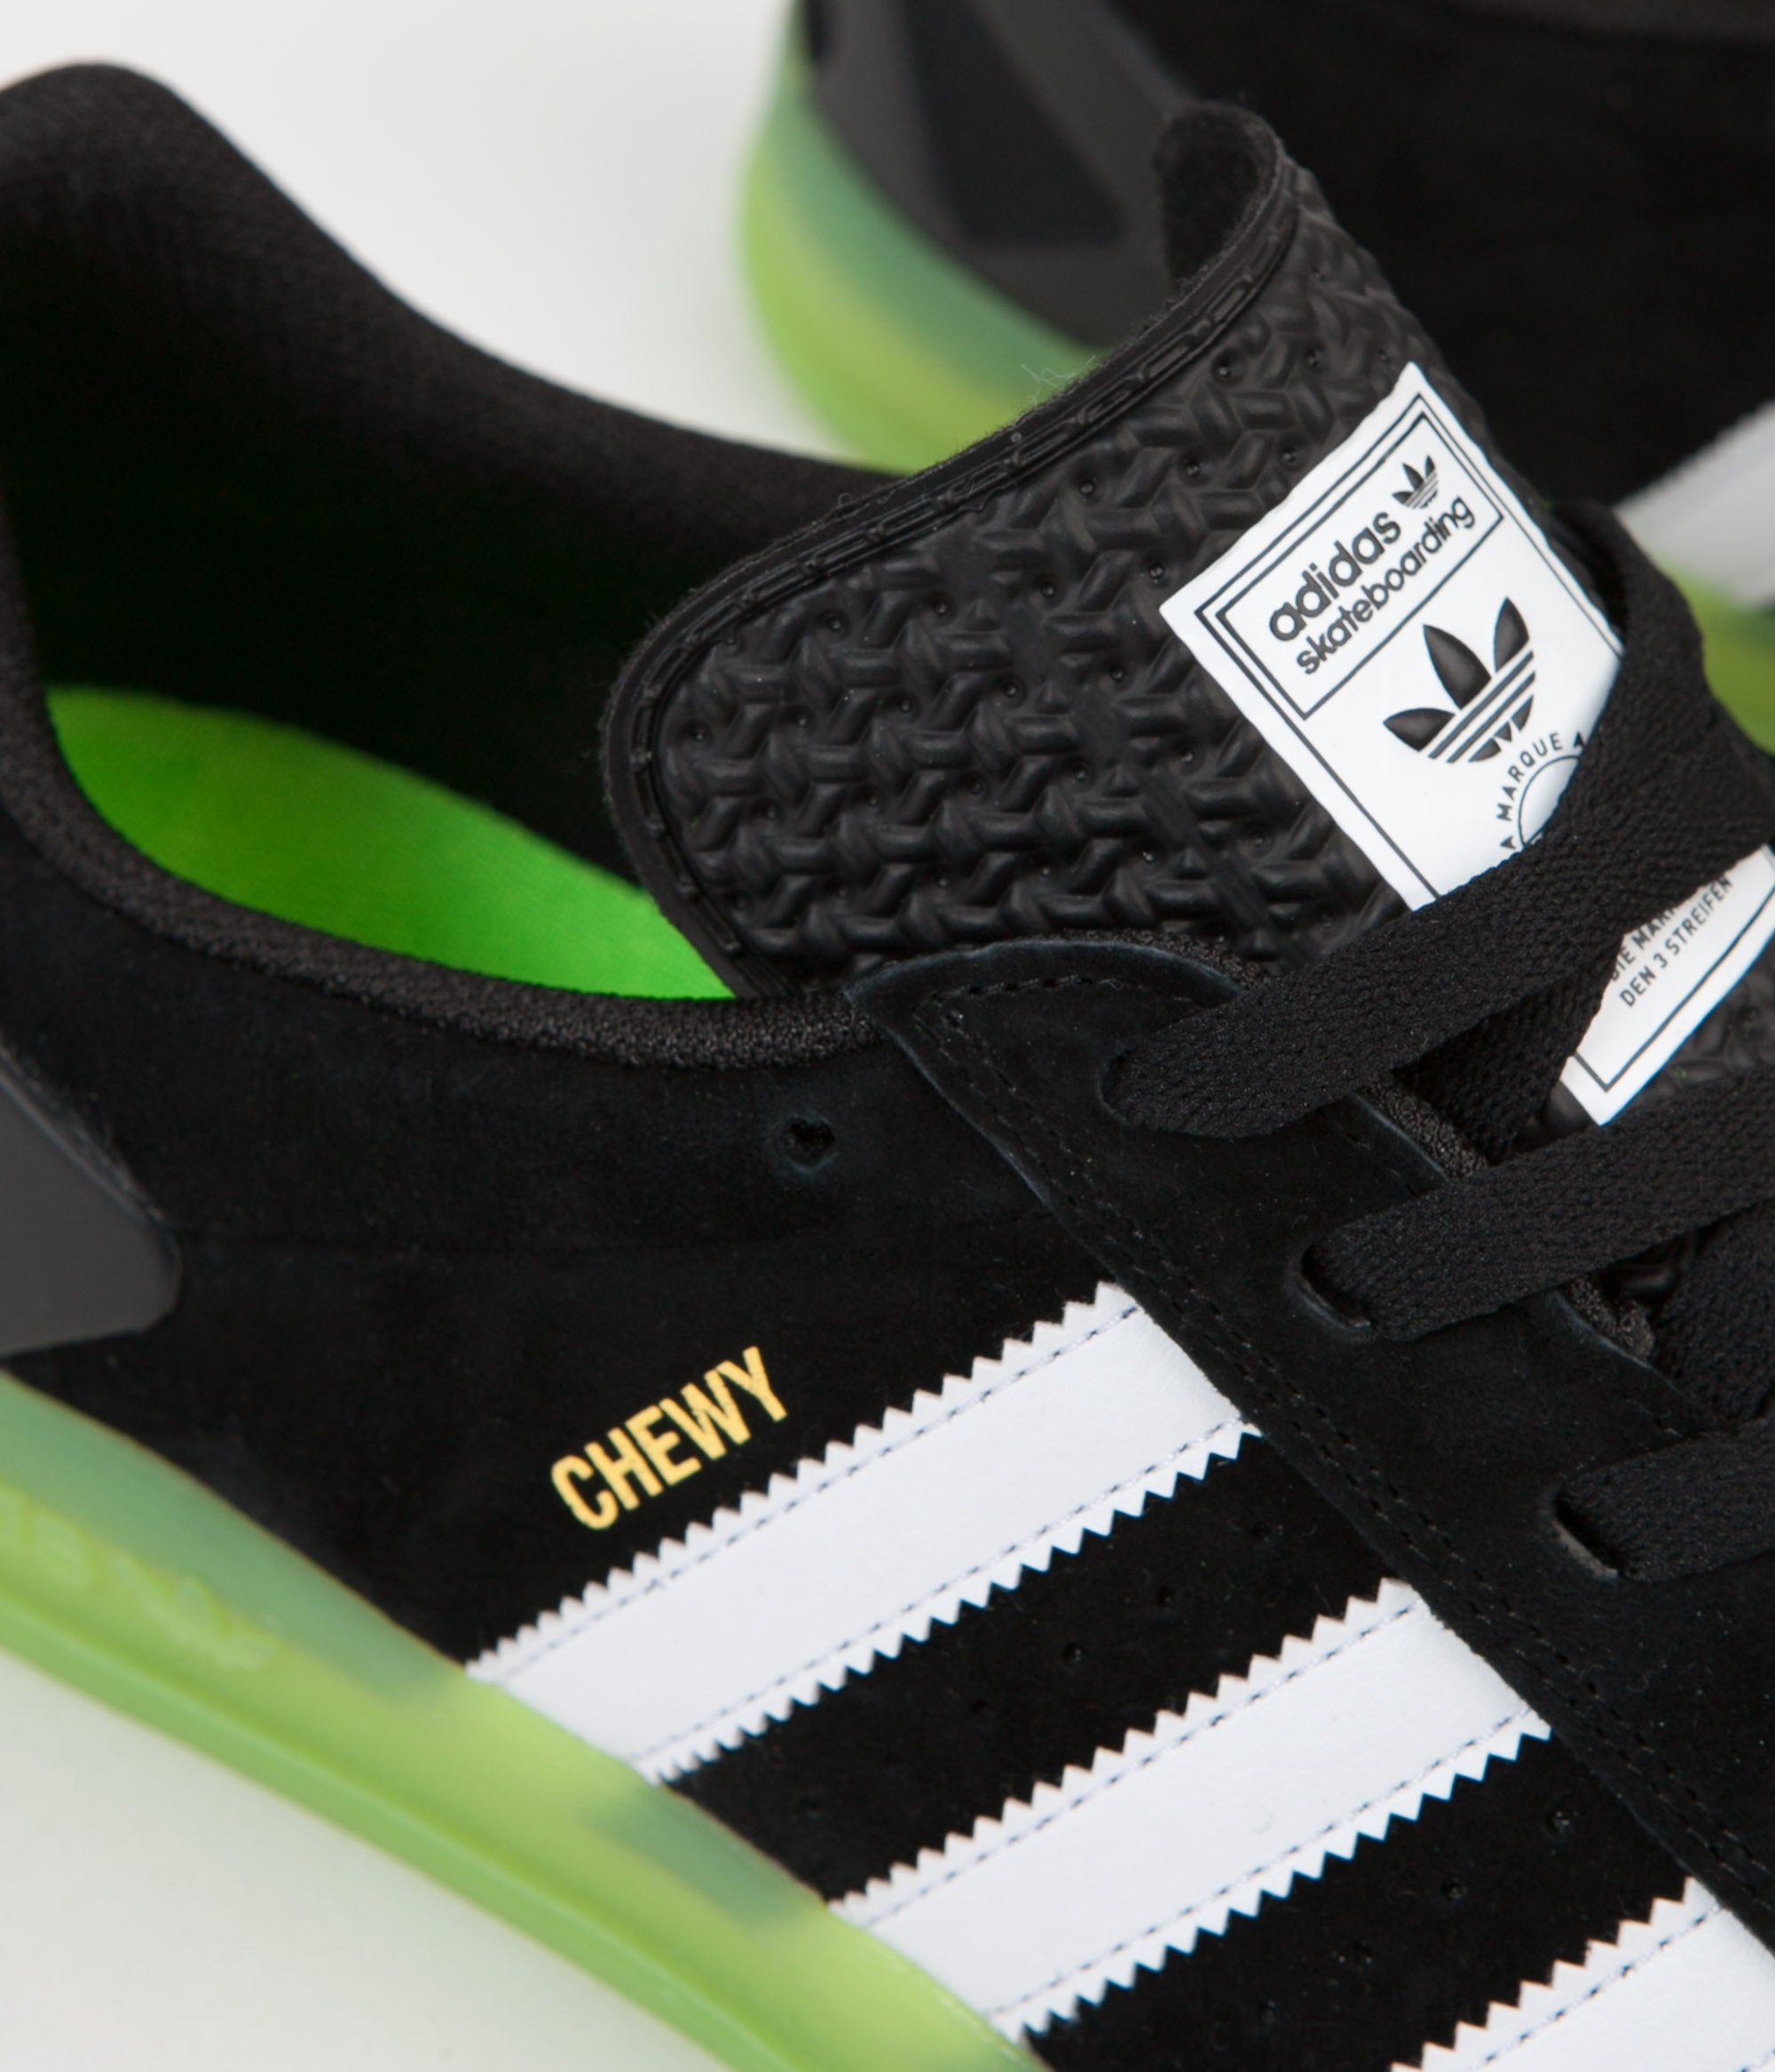 low priced cab02 353c6 ... where can i buy green adidas x palace pro chewy shoes black white 4f826  60950 discount originals adidas black green city 3 generations shoes men ...